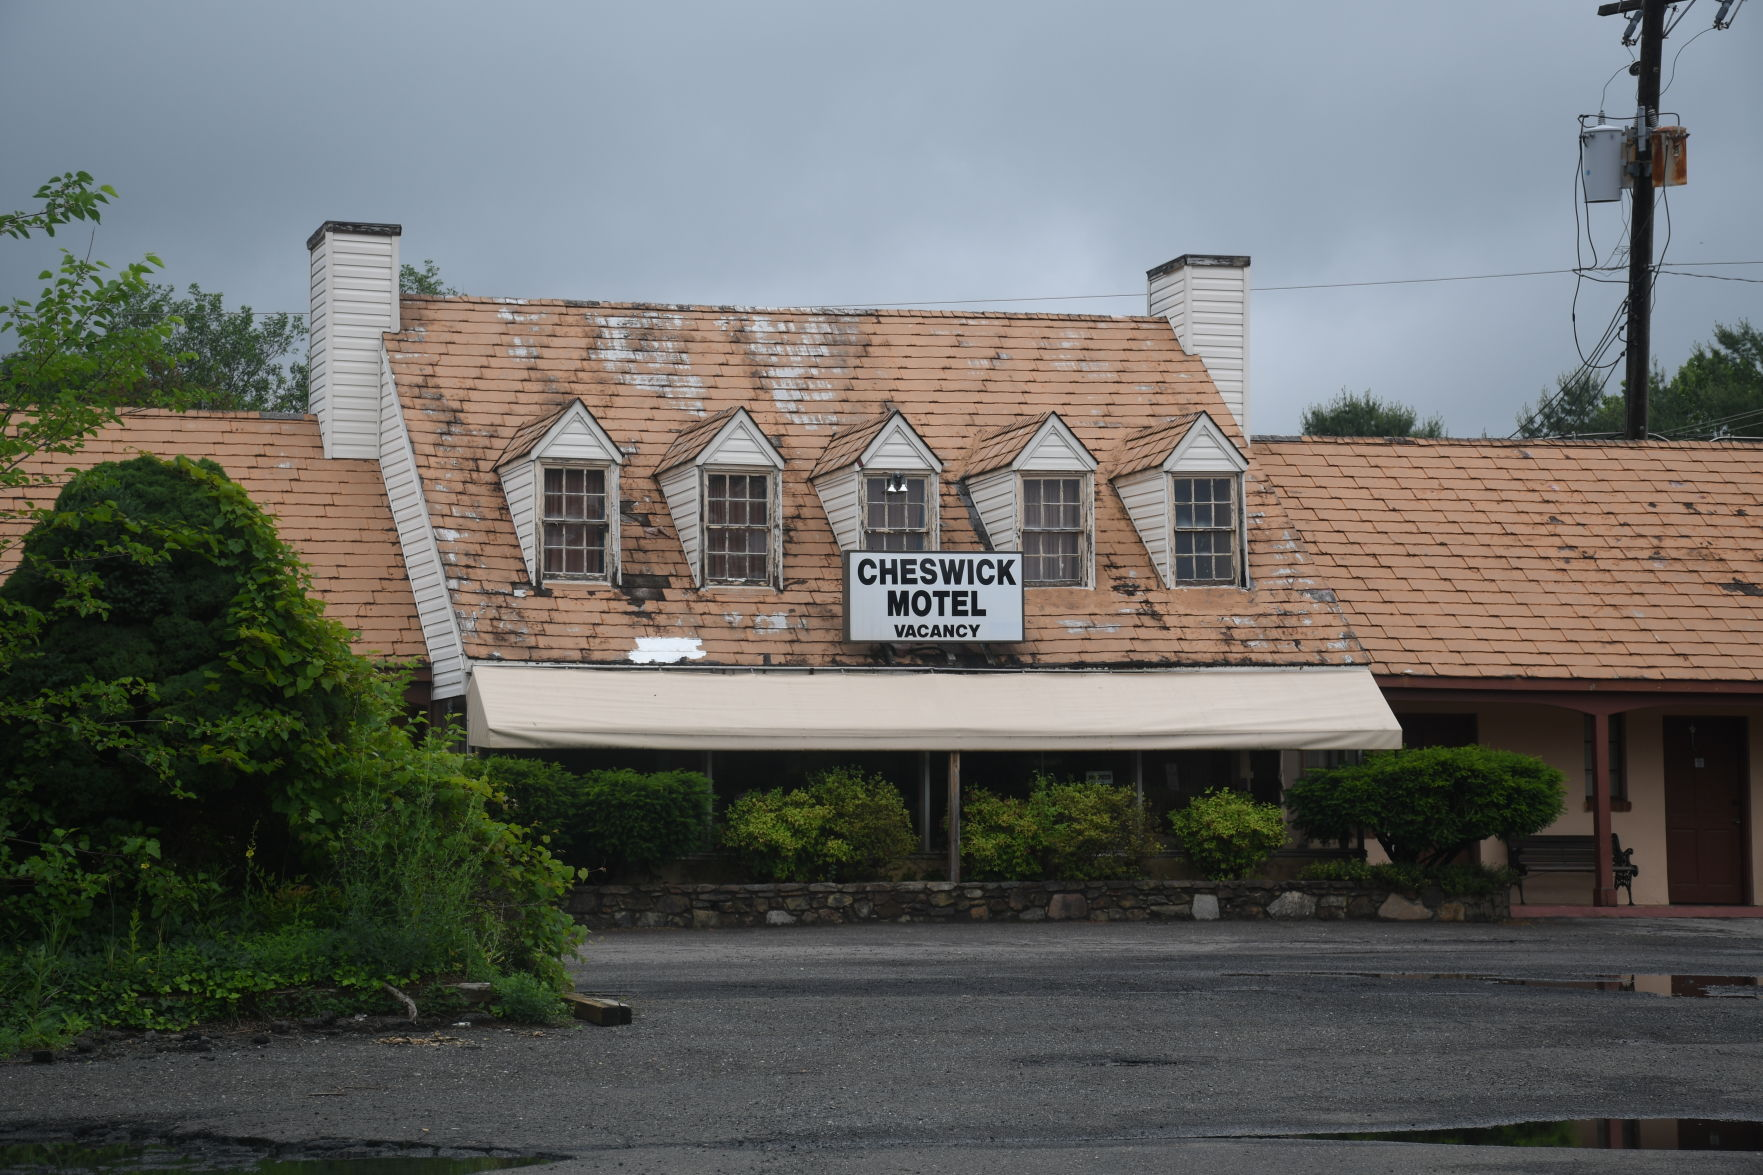 The Cheswick Motel, A Fixture On Broadview Avenue Since The 1950s, Has Been  Ordered By The Town To Repairs More Than A Dozen Units Deemed Unfit For  Human ...